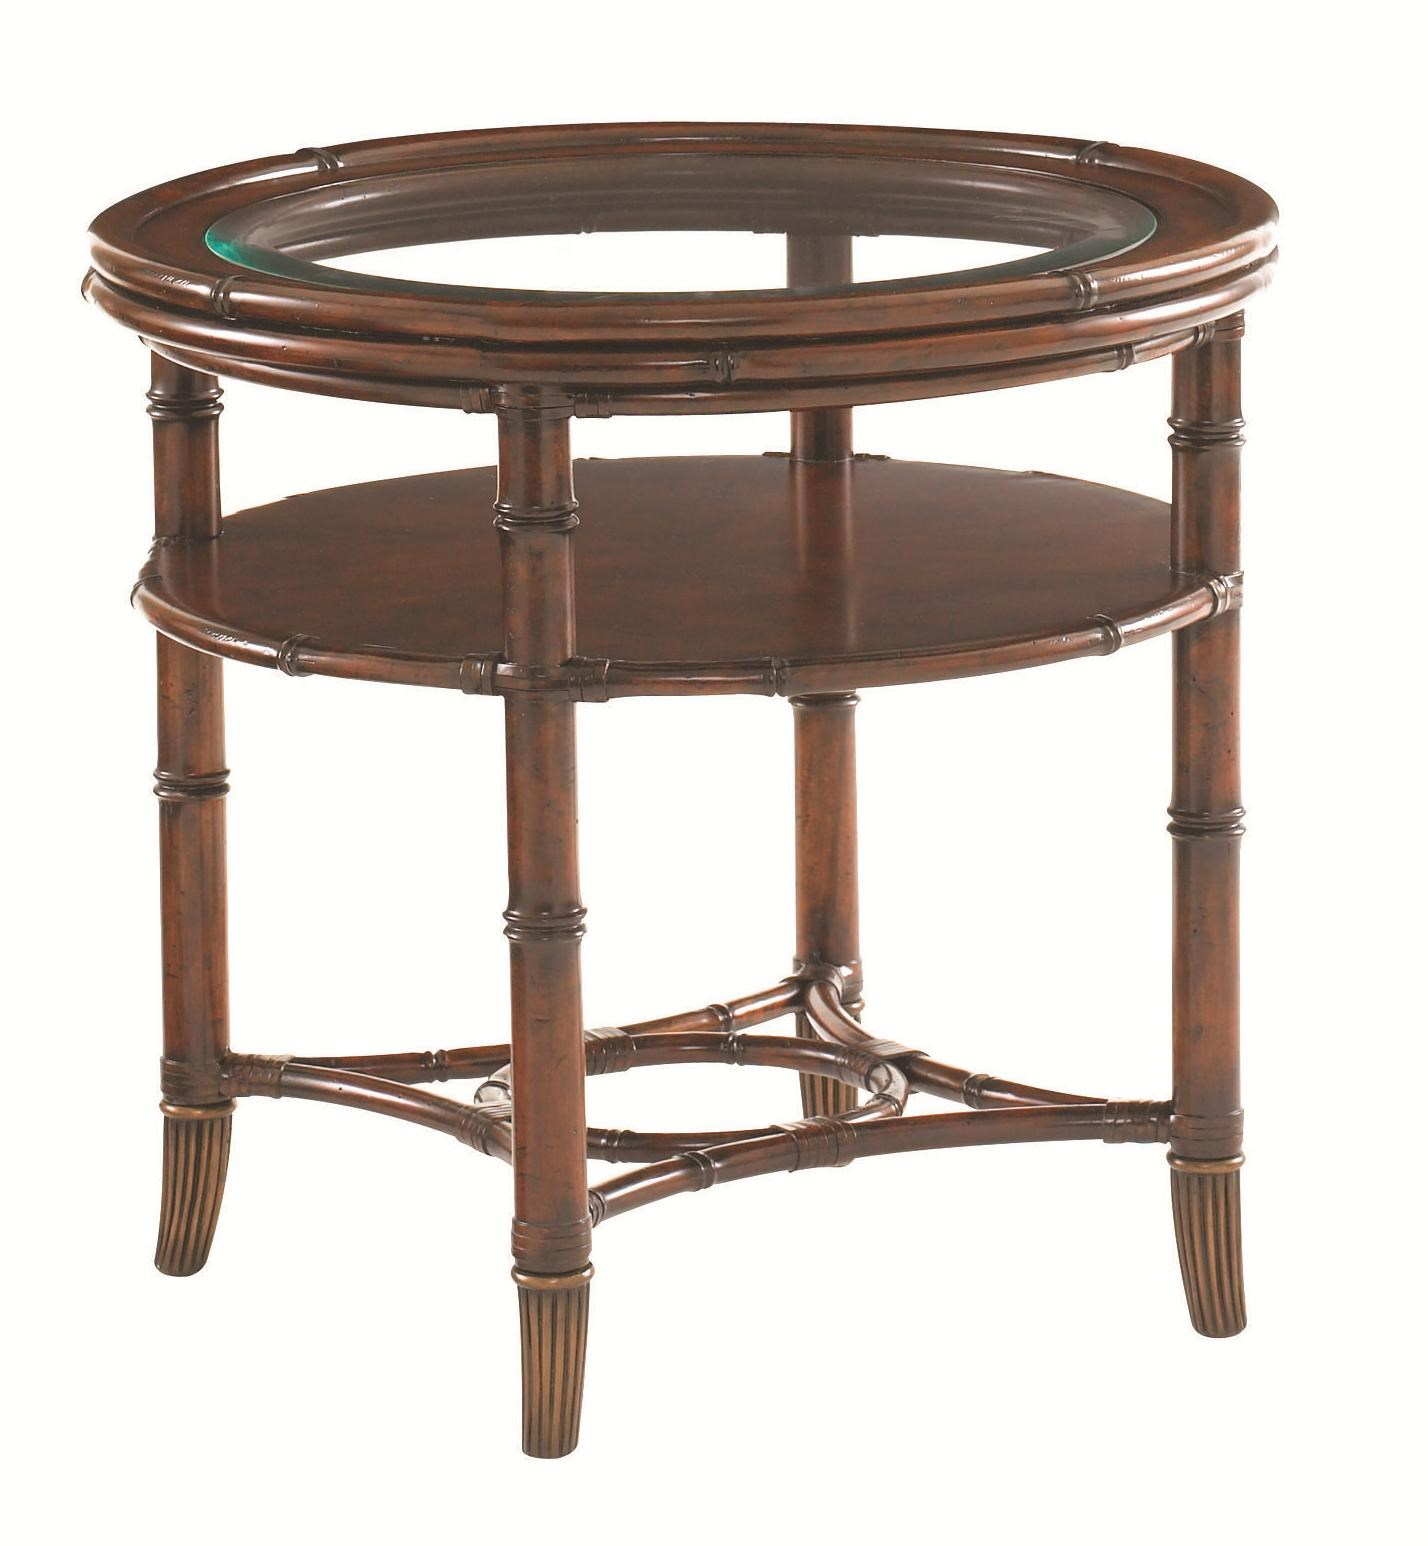 Tommy Bahama Home Landara Maricopa Round Glass Topped Lamp Table With  Bamboo Legs And Rattan